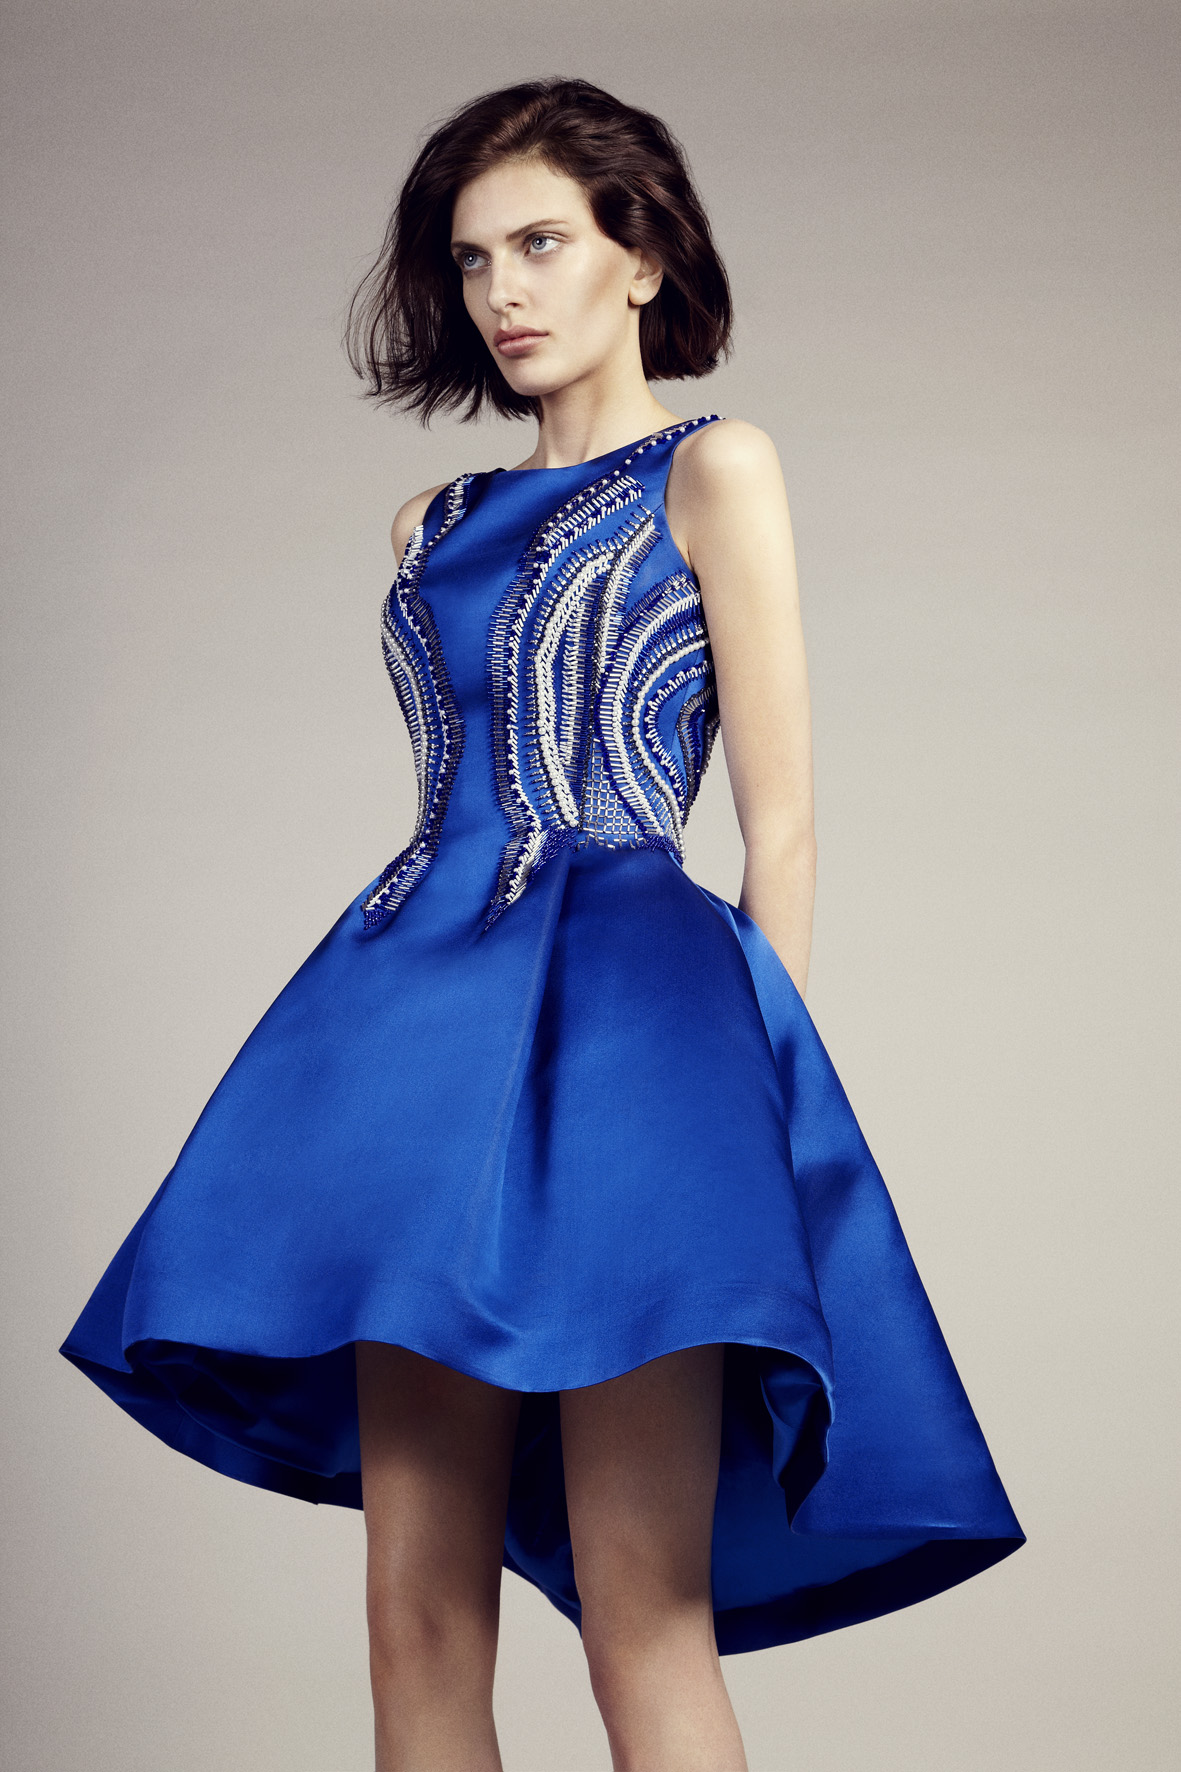 AliceRichardson_VeniViciCouture 2014_Bluedetail